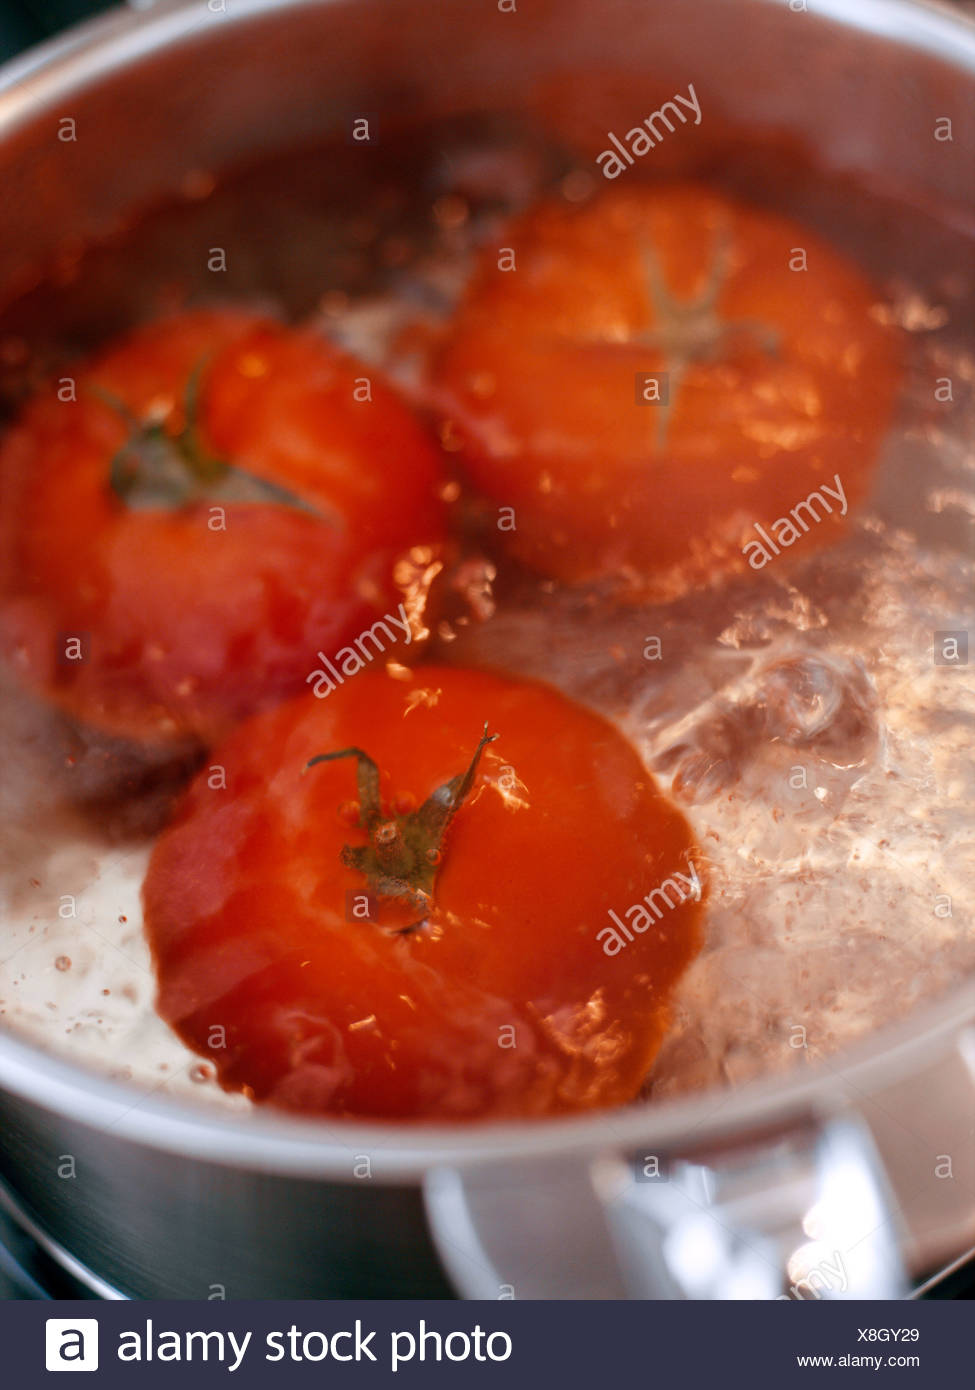 Leaving the tomatoes in the boiling water for a few minutes - Stock Image